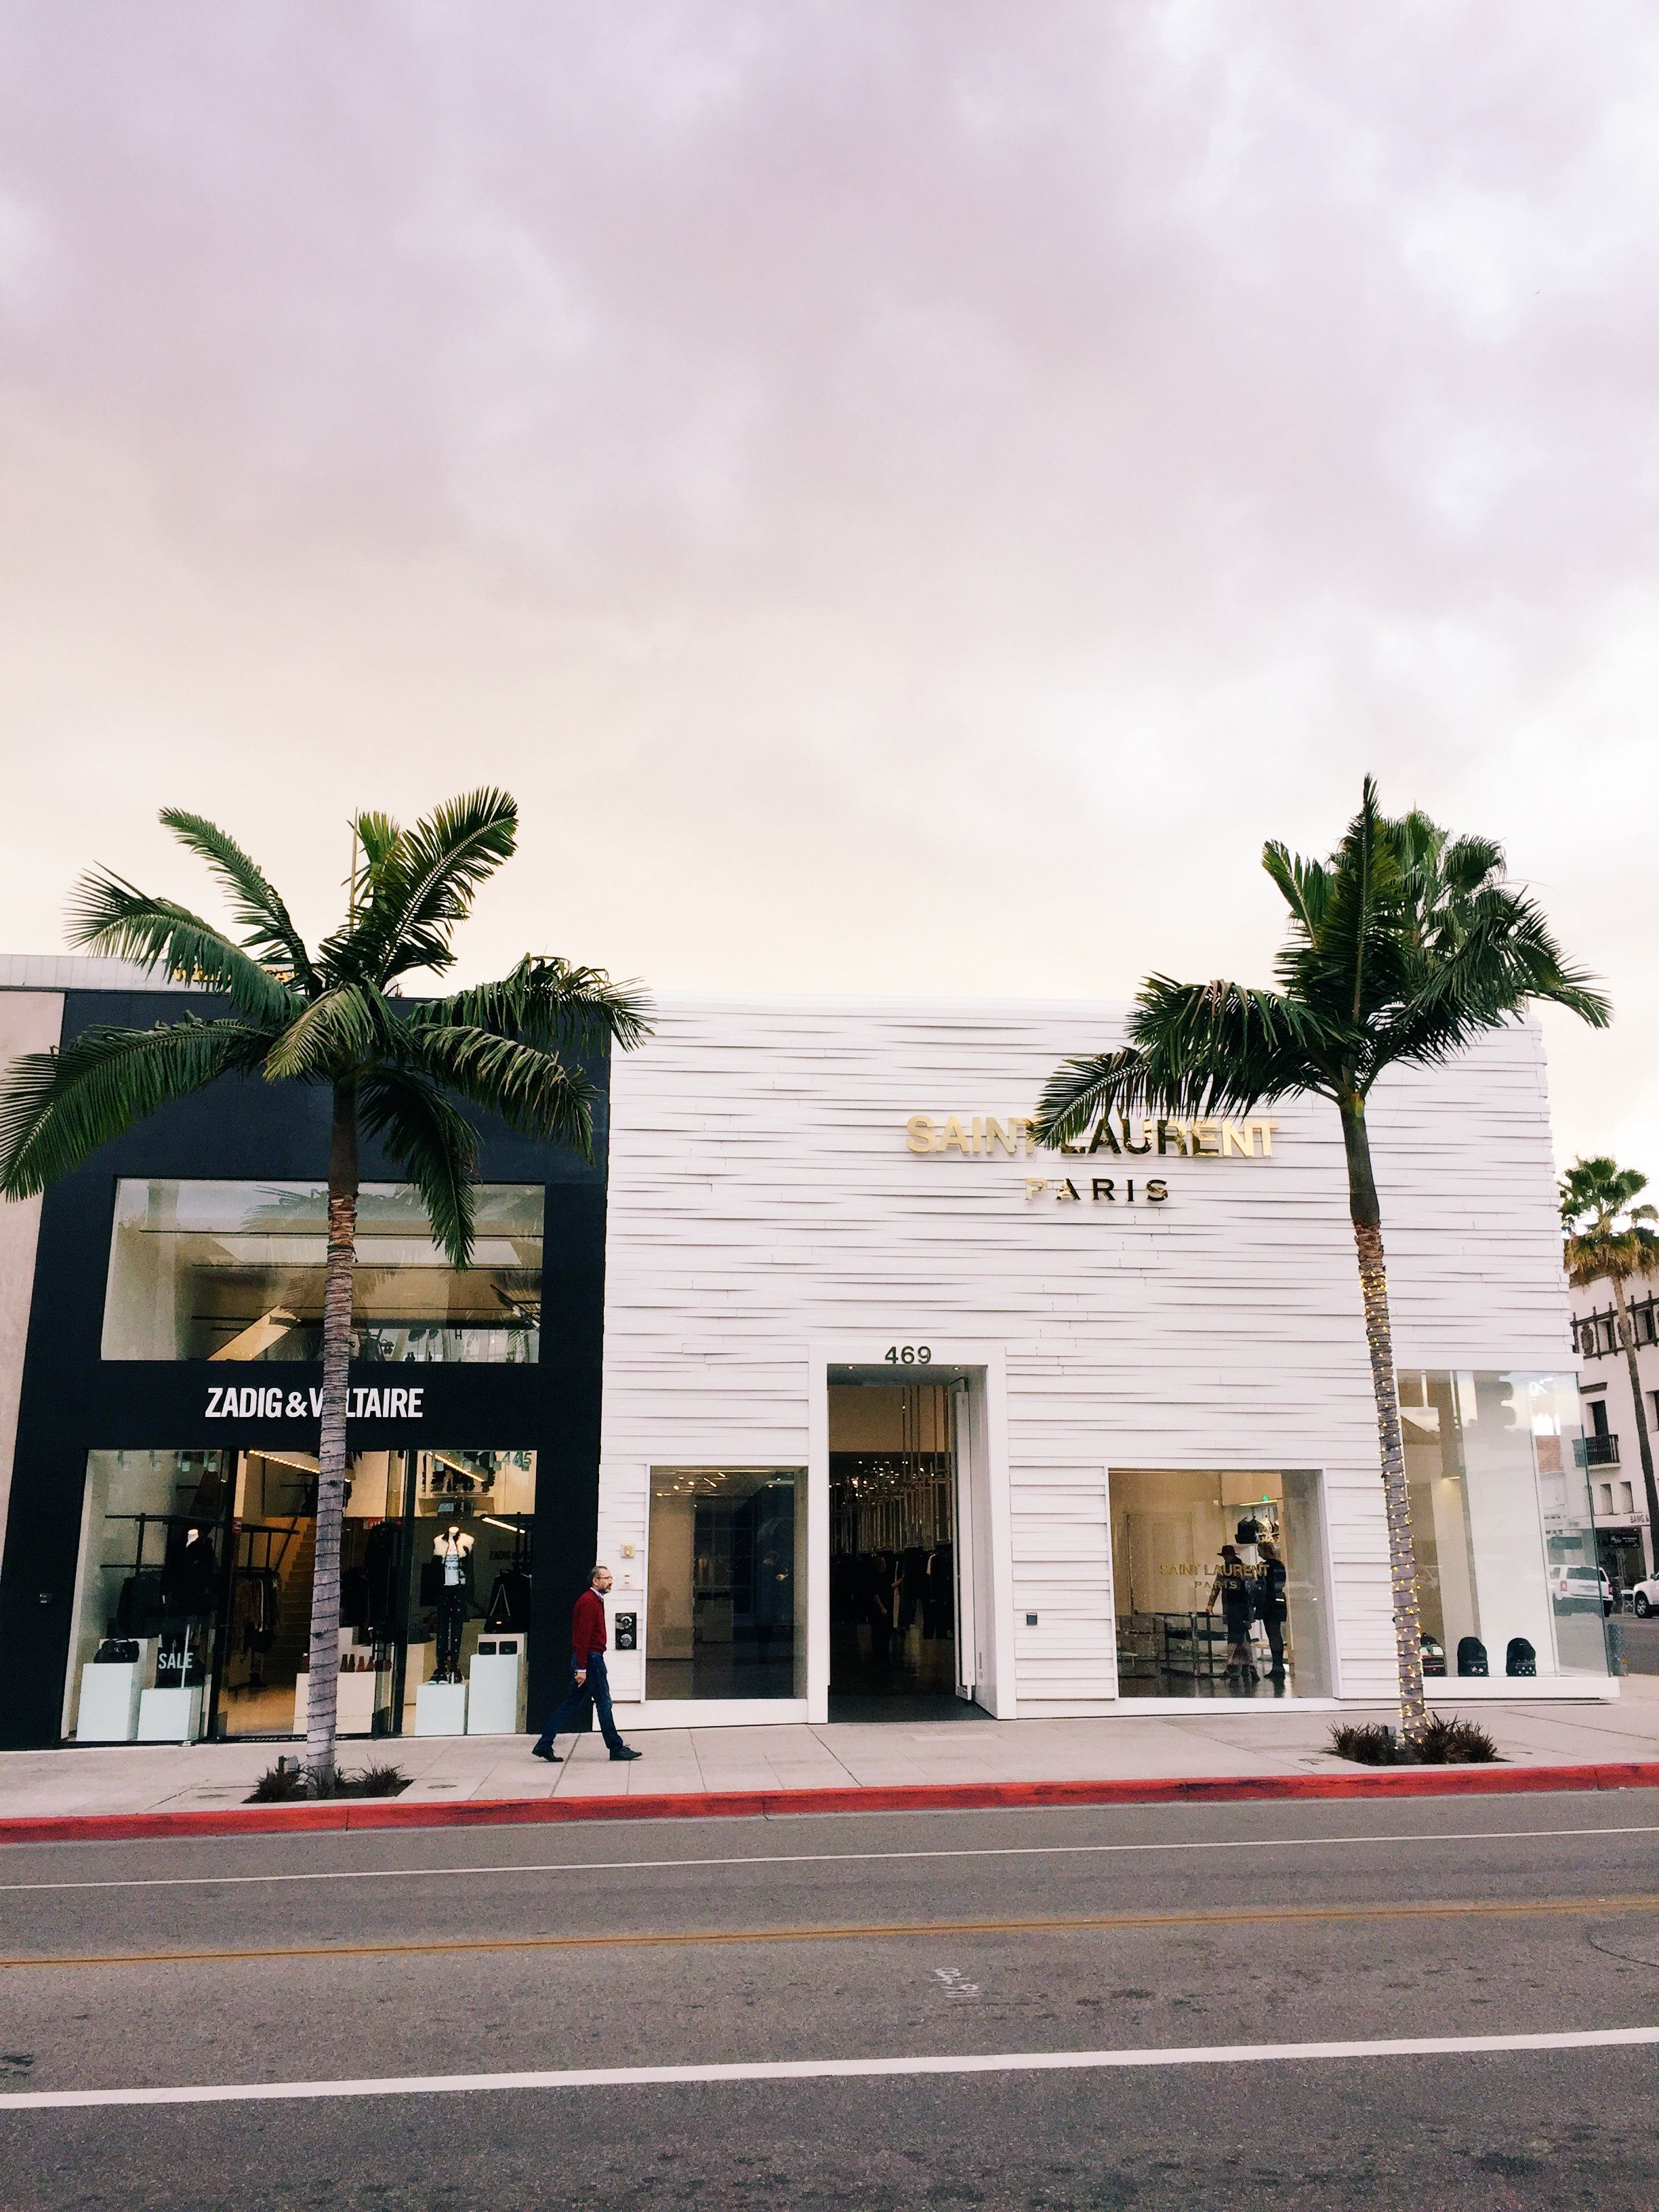 Los Angeles Rodeo Drive In 2019 Los Angeles Travel